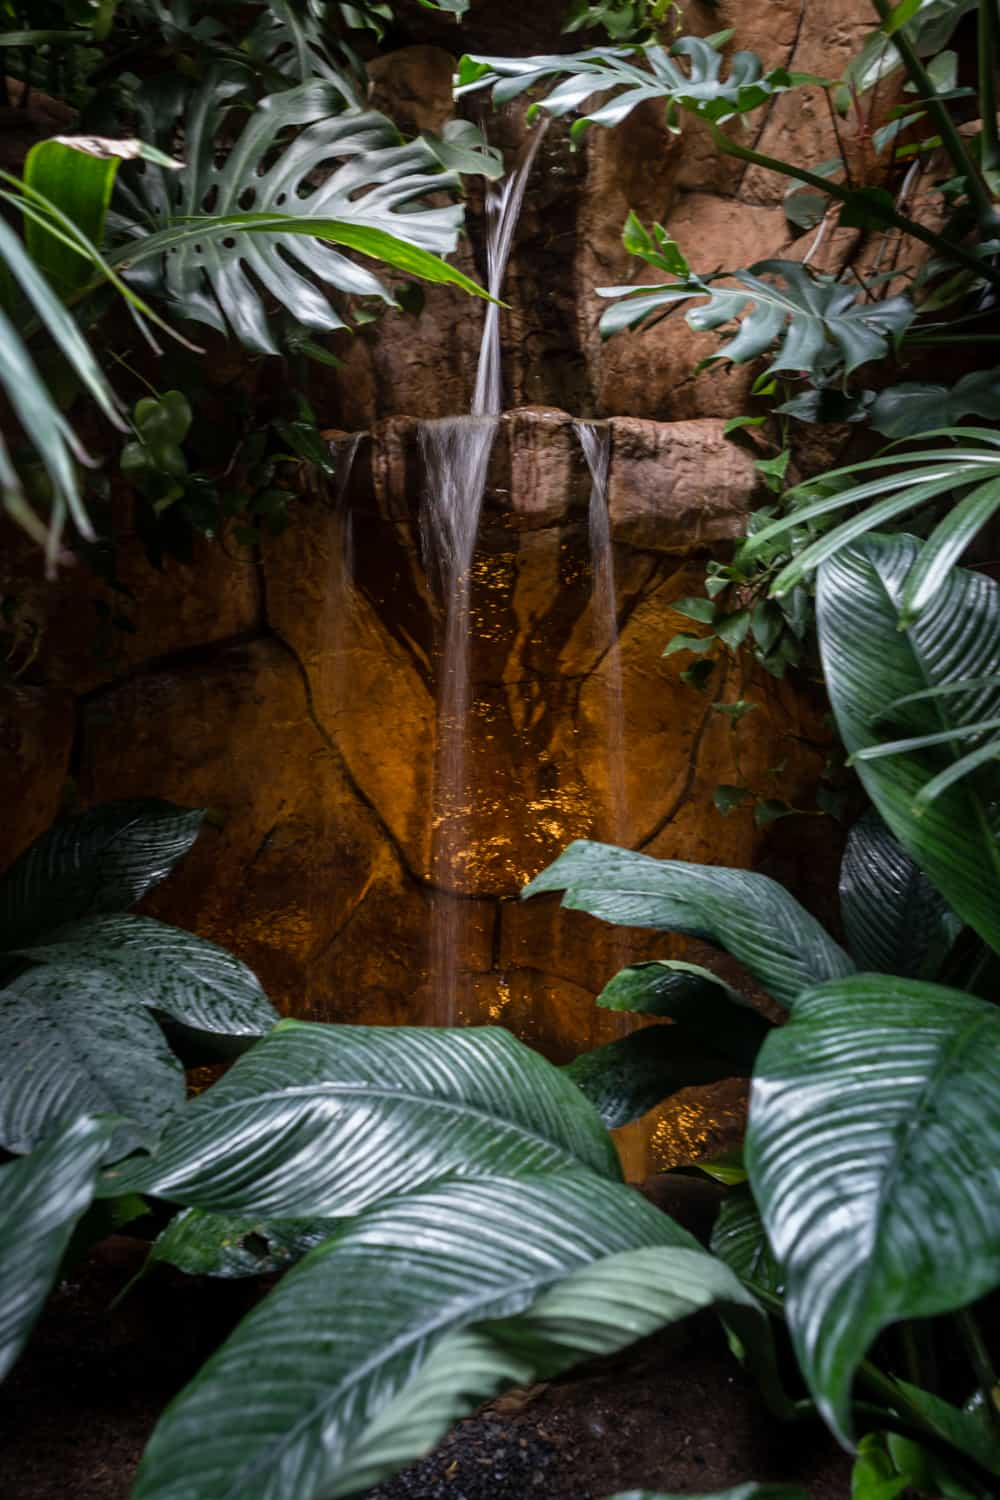 Close-up photo of waterfall in corner of exotic garden-style bathroom.